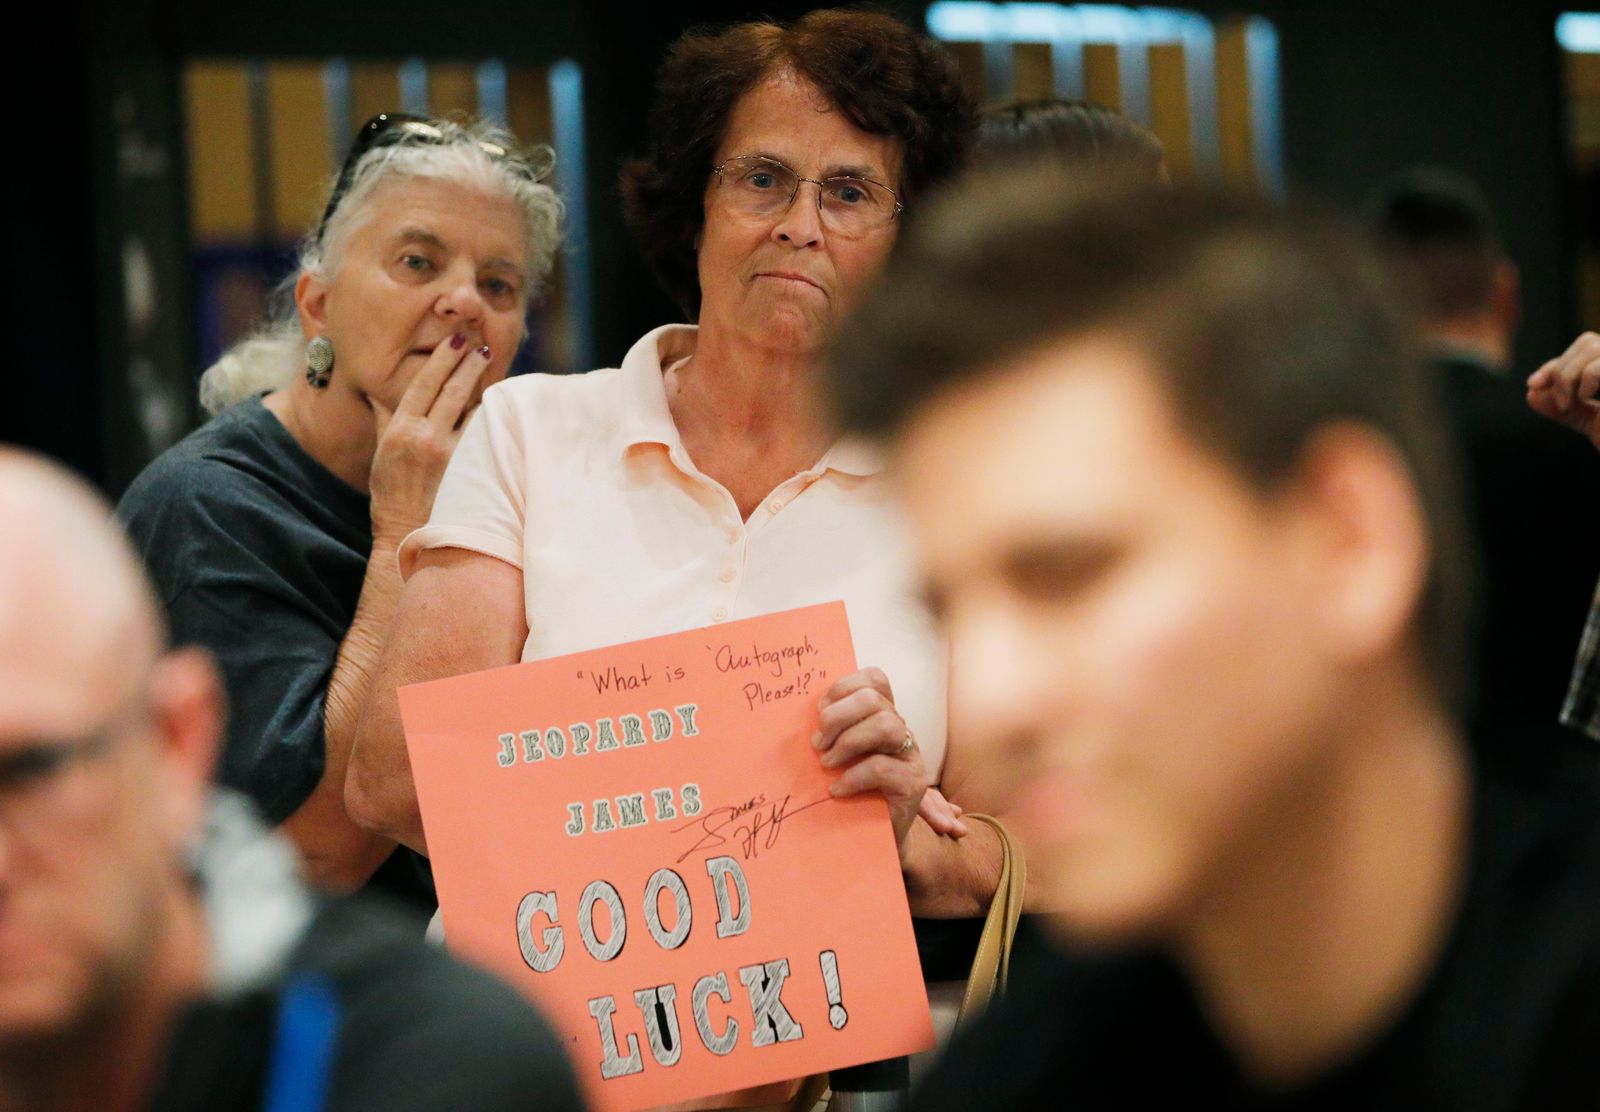 """Jeopardy!"" fans Judi Blomquist, holding sign, and Susan Youngblood watch as ""Jeopardy!"" champion and professional sports gambler James Holzhauer, right, plays in a tournament at the World Series of Poker, Monday, June 24, 2019, in Las Vegas. (AP Photo/John Locher)"